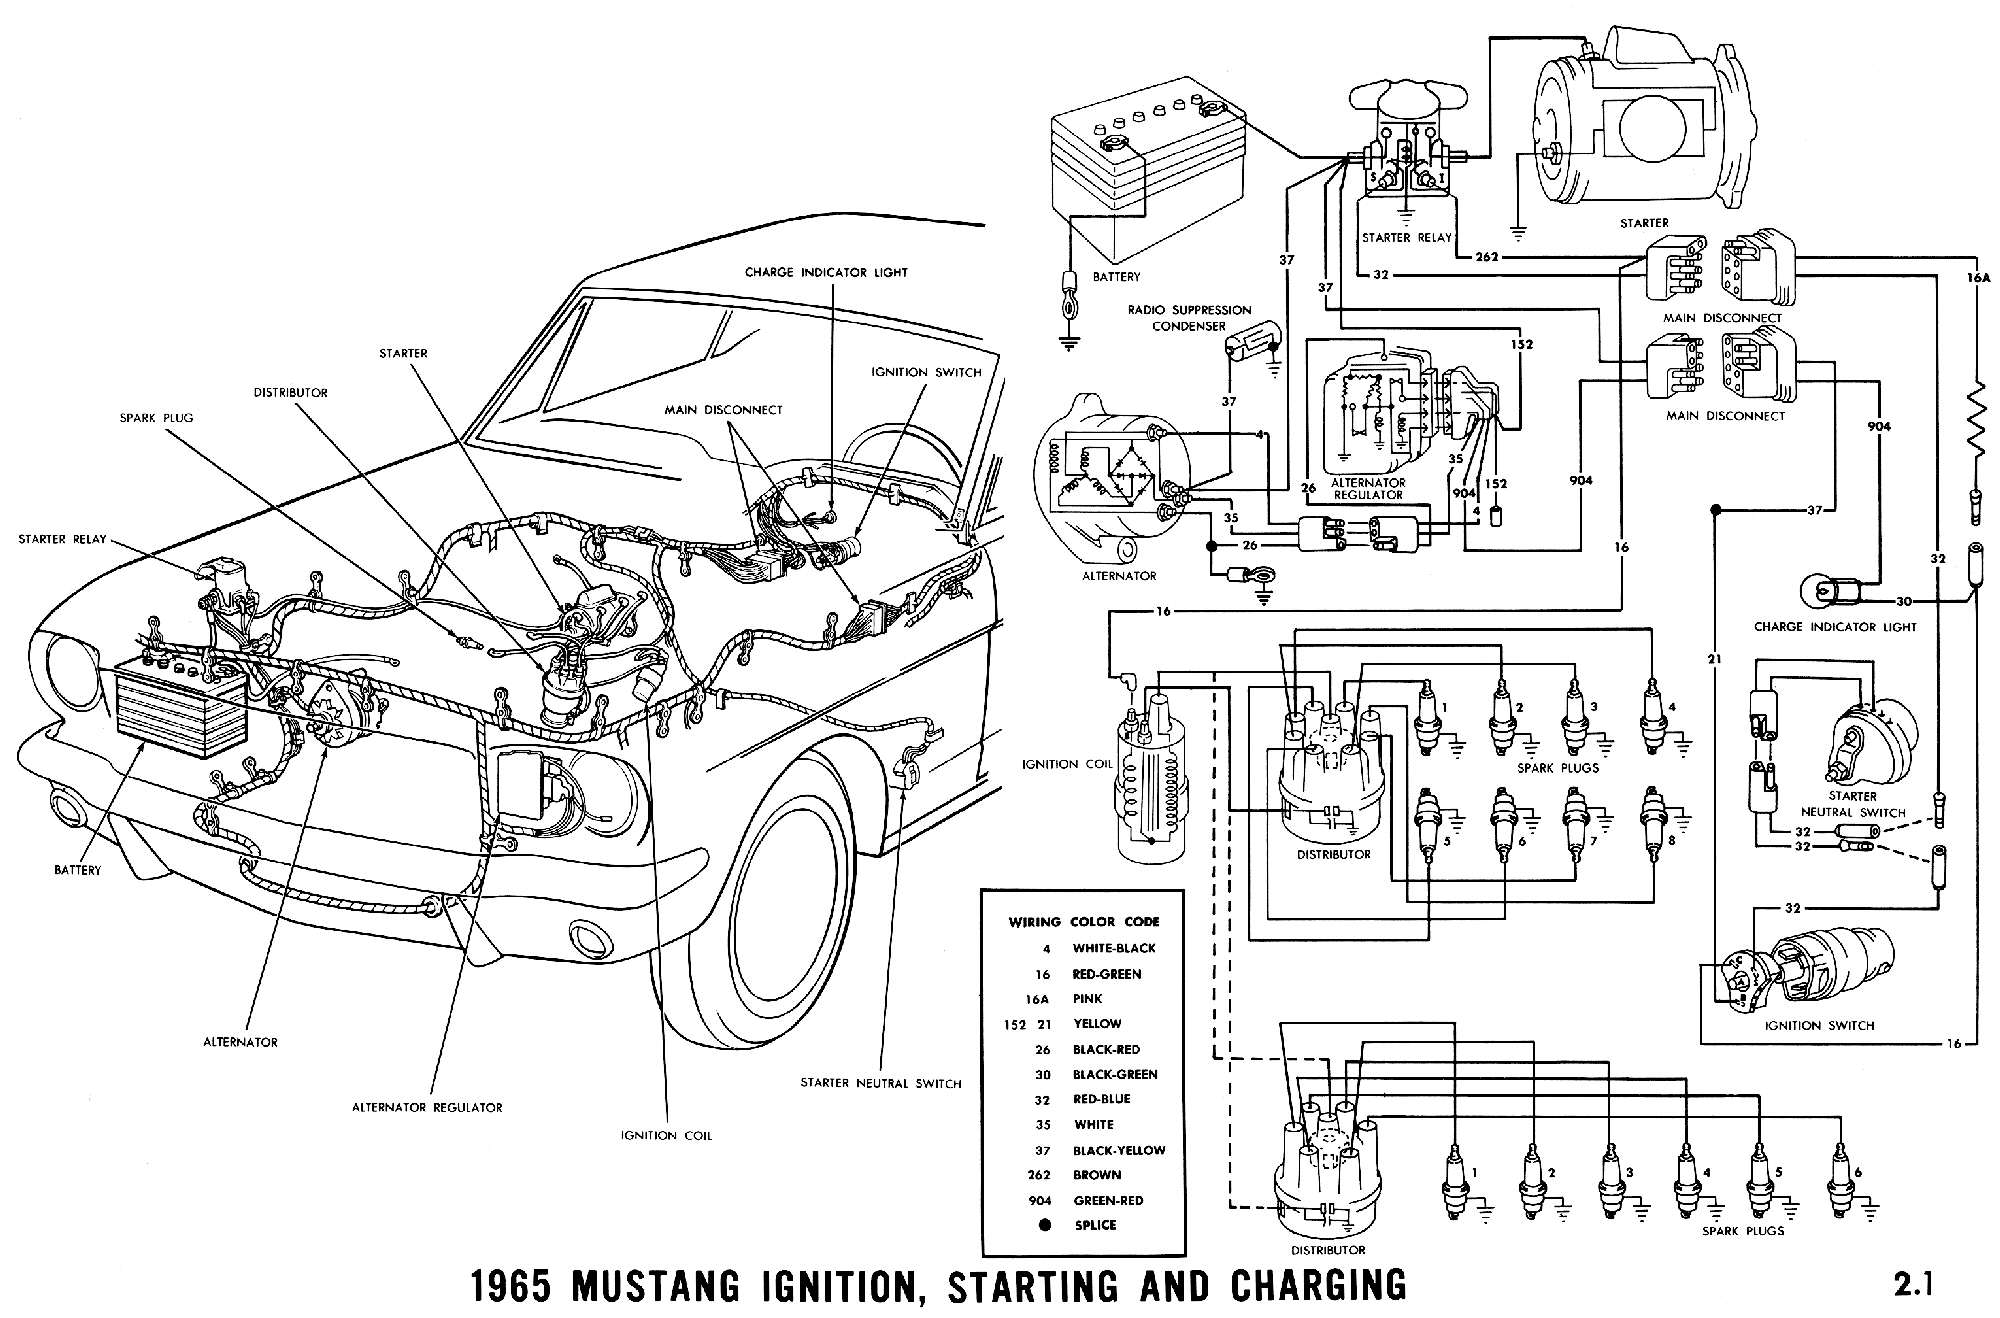 1965c 1965 mustang wiring diagrams average joe restoration 1965 ford mustang wiring diagrams at arjmand.co